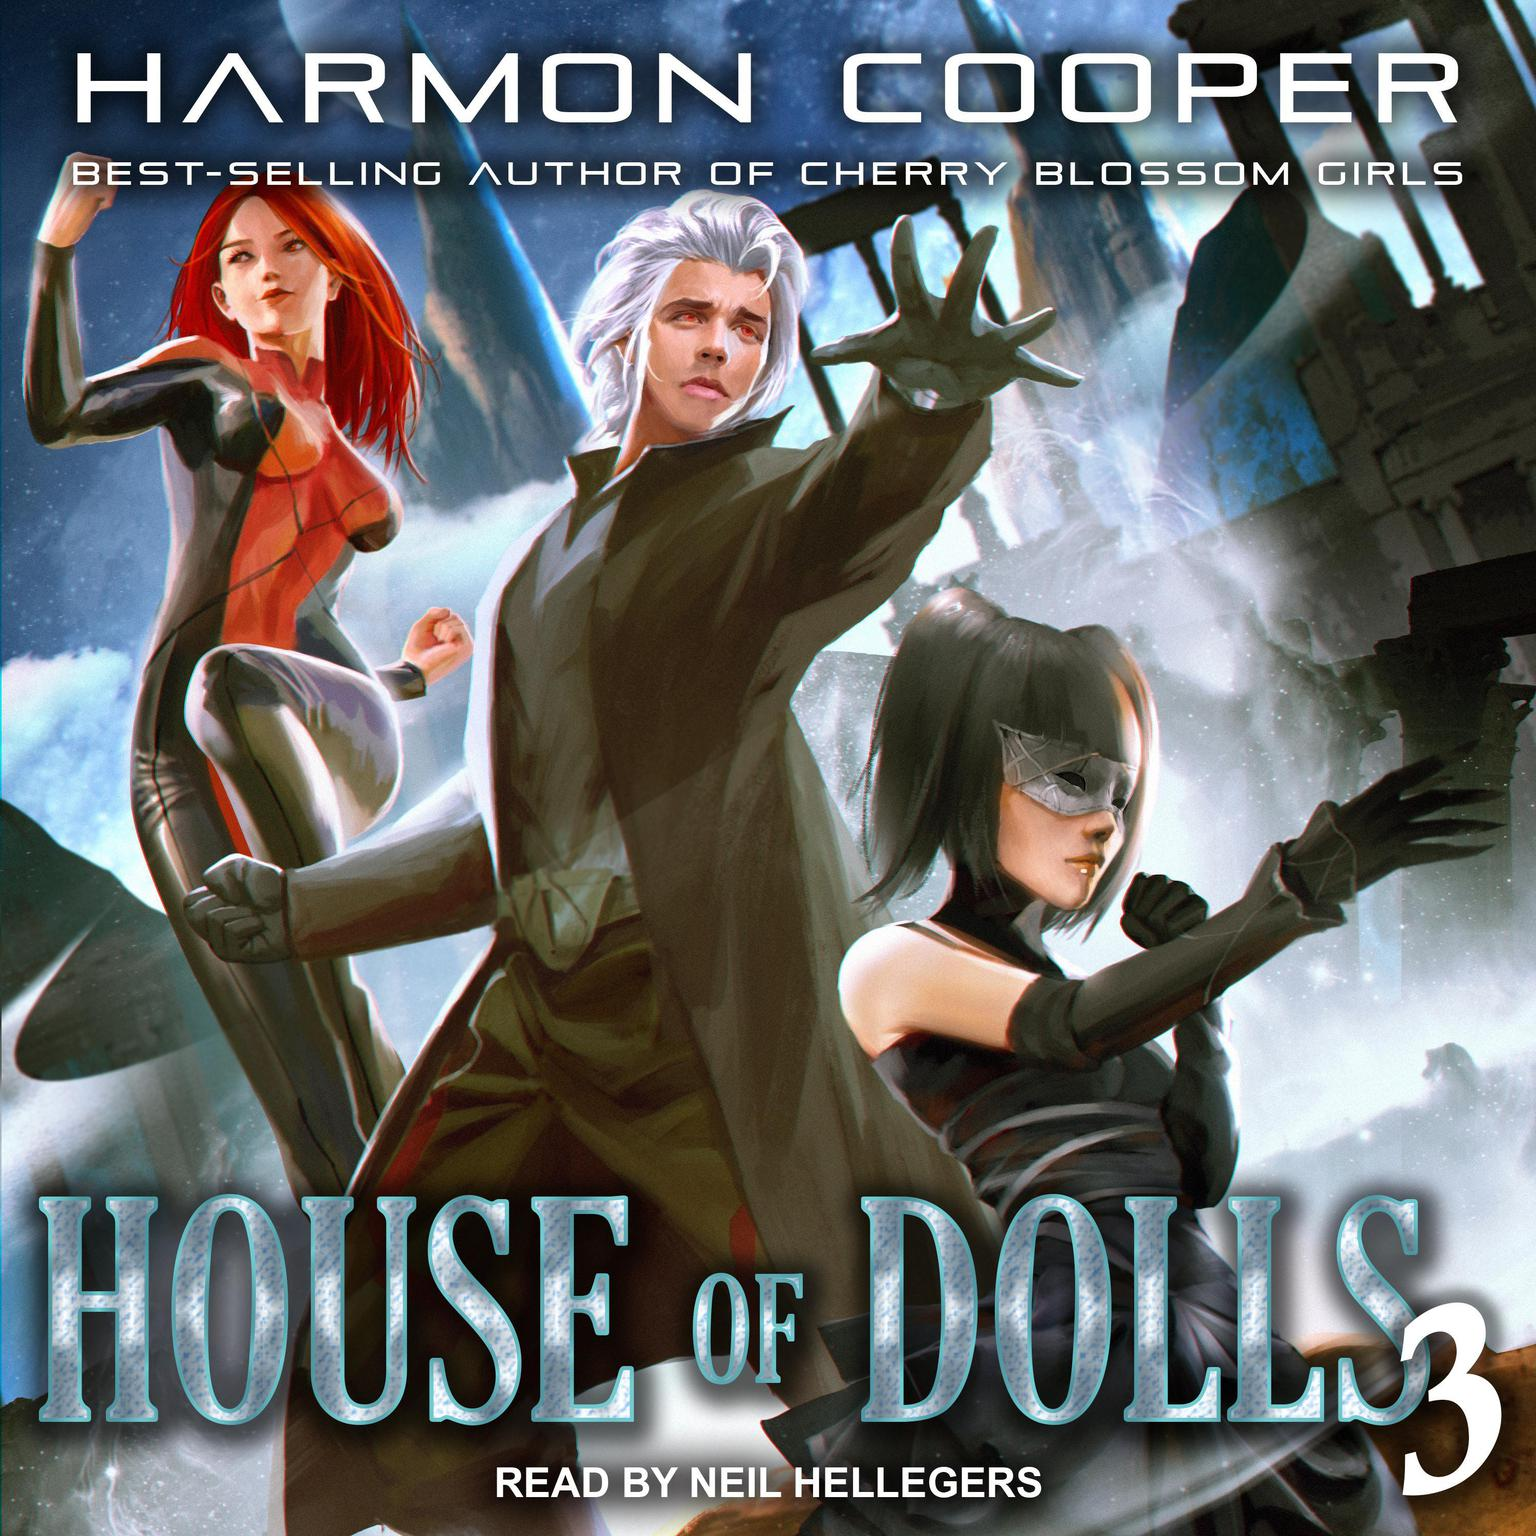 Printable House of Dolls 3 Audiobook Cover Art